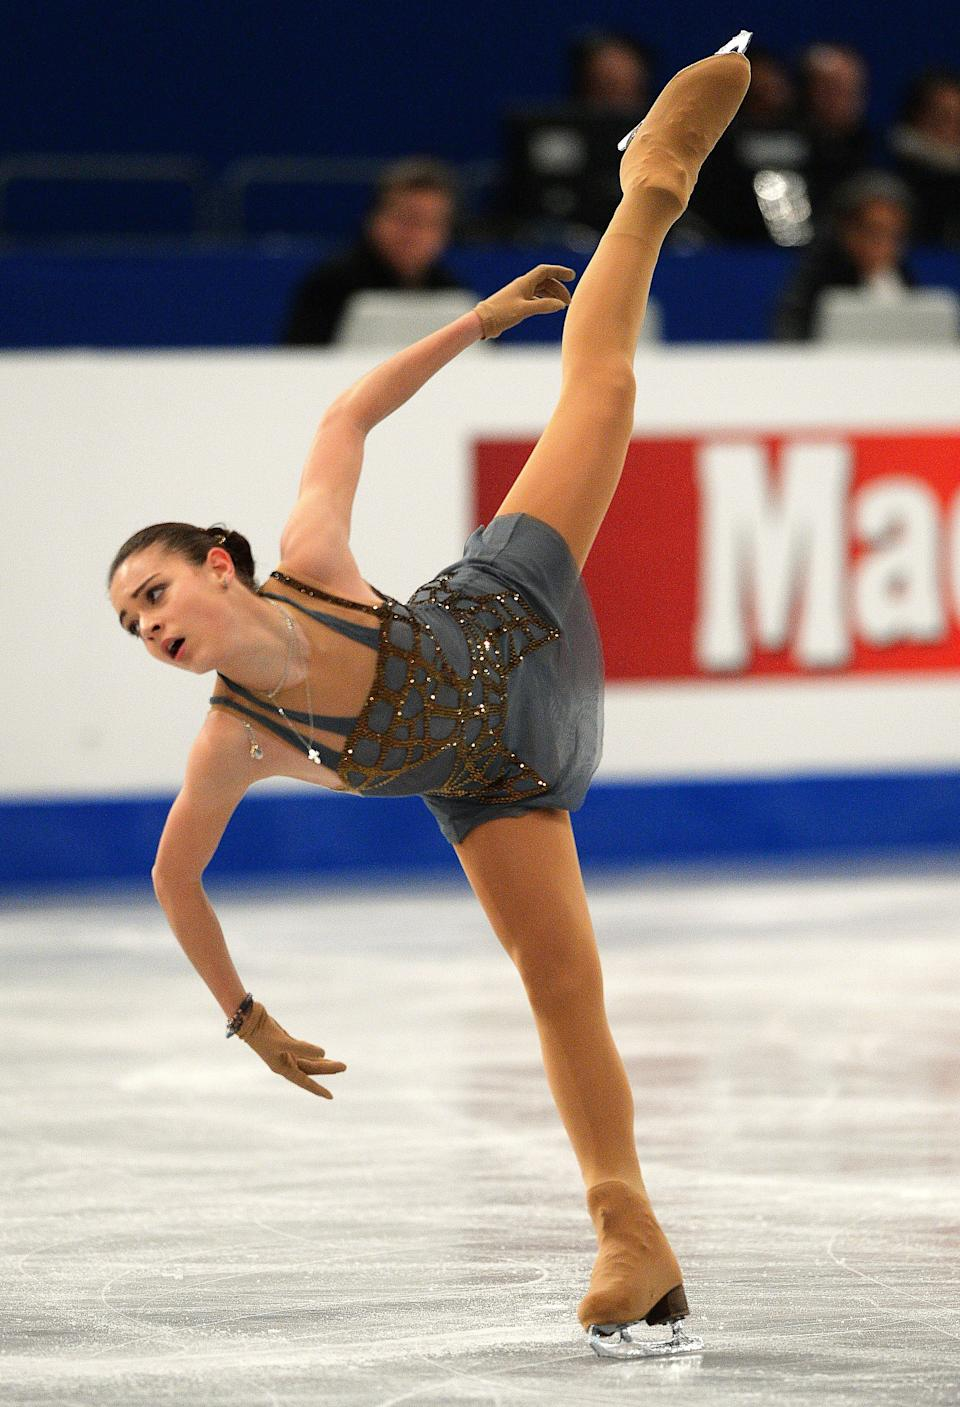 Russia's Adelina Sotnikova performs on ice of 'SYMA' sports hall in Budapest on January 17, 2014 during the free skating programme for women category of the ISU European Figure Skating Championships. (ATTILA KISBENEDEK/AFP/Getty Images)